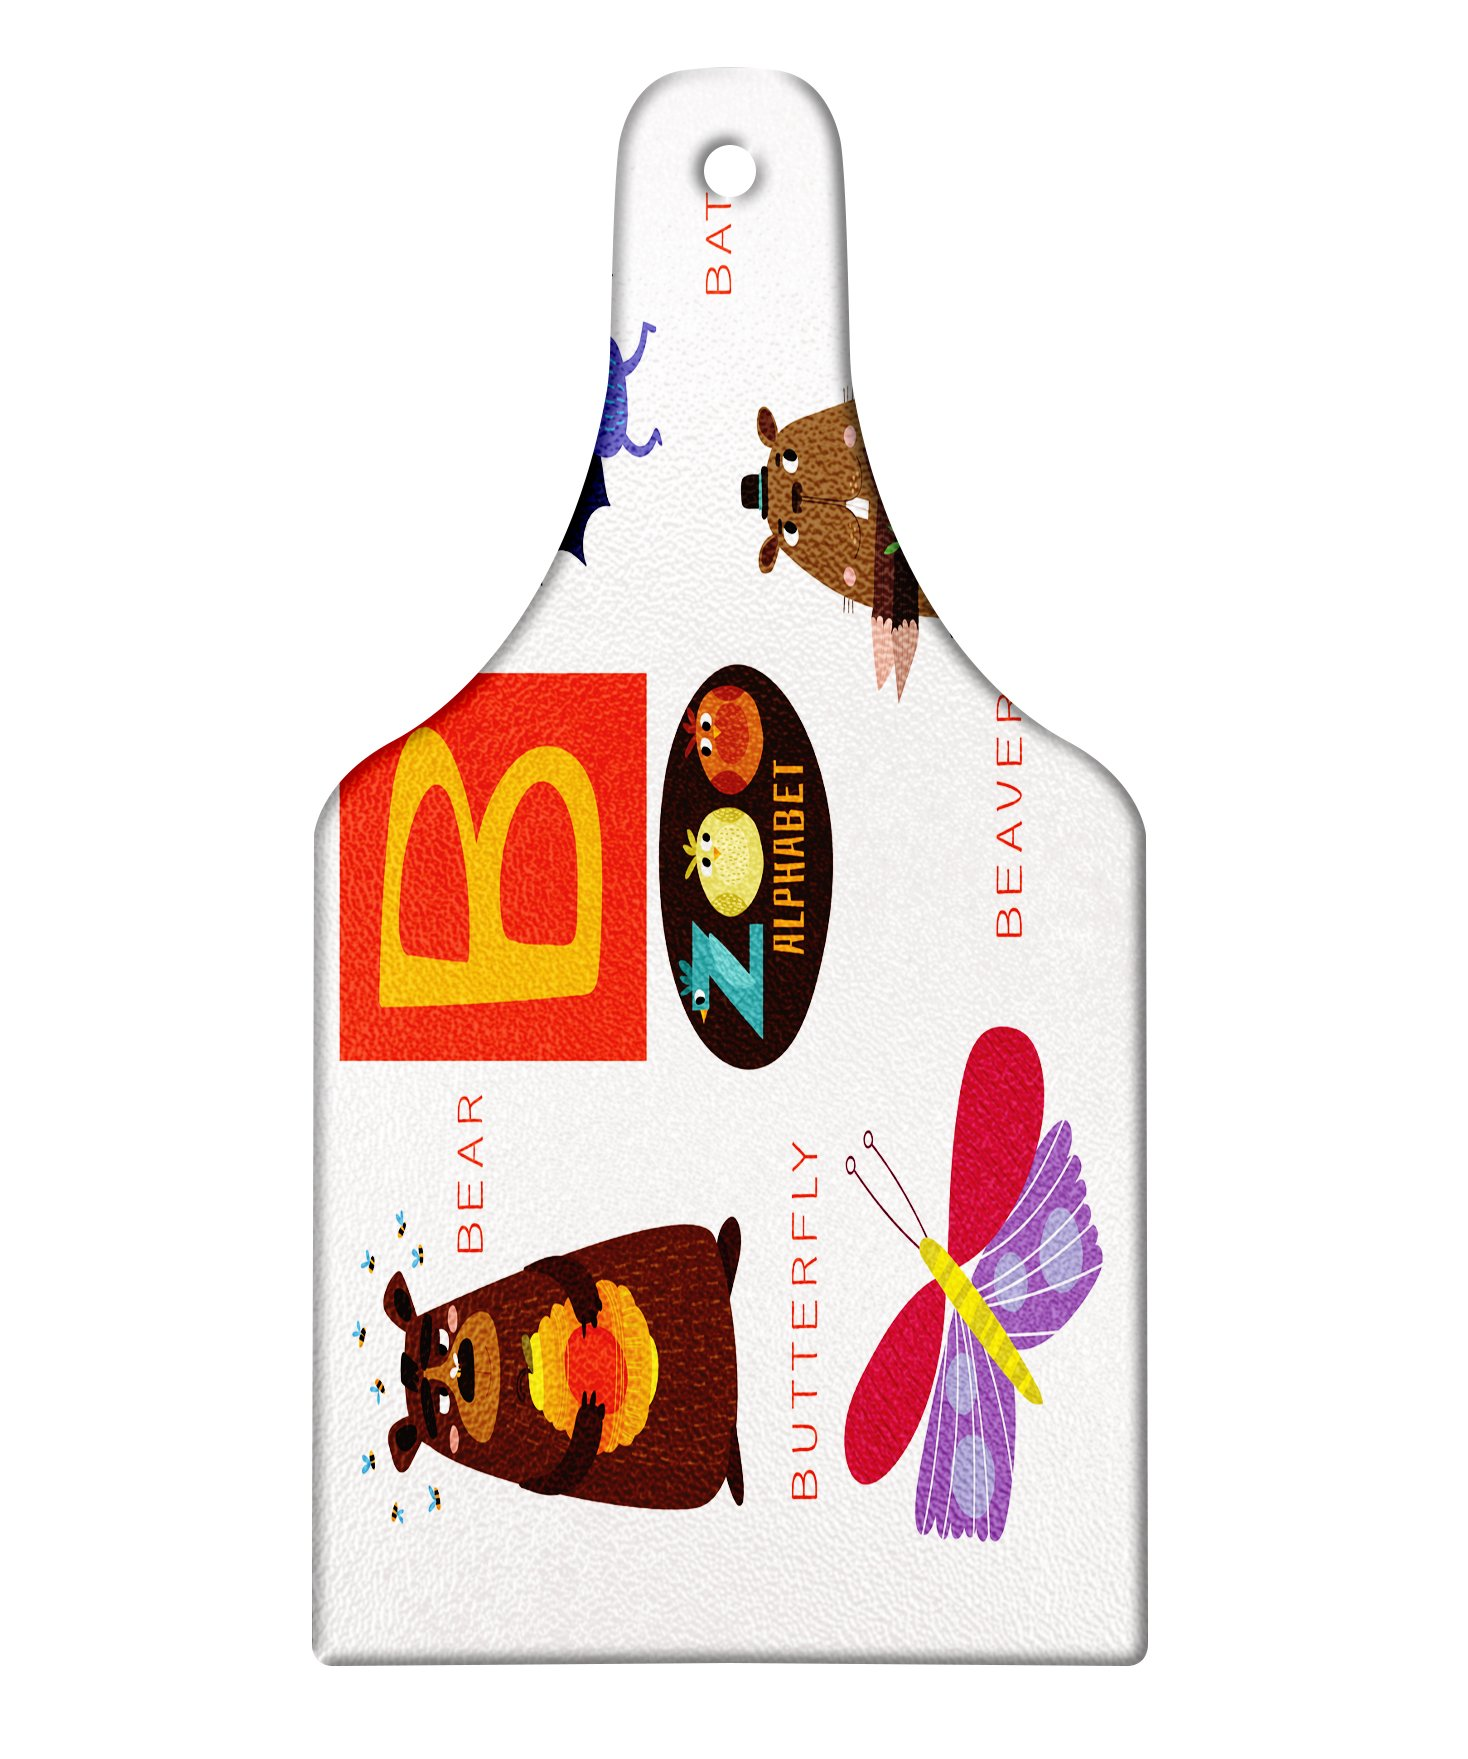 Lunarable ABC Kids Cutting Board, Letter B with Bat Butterfly Bear and Beaver Learn to Read Going to School Theme, Decorative Tempered Glass Cutting and Serving Board, Wine Bottle Shape, Multicolor